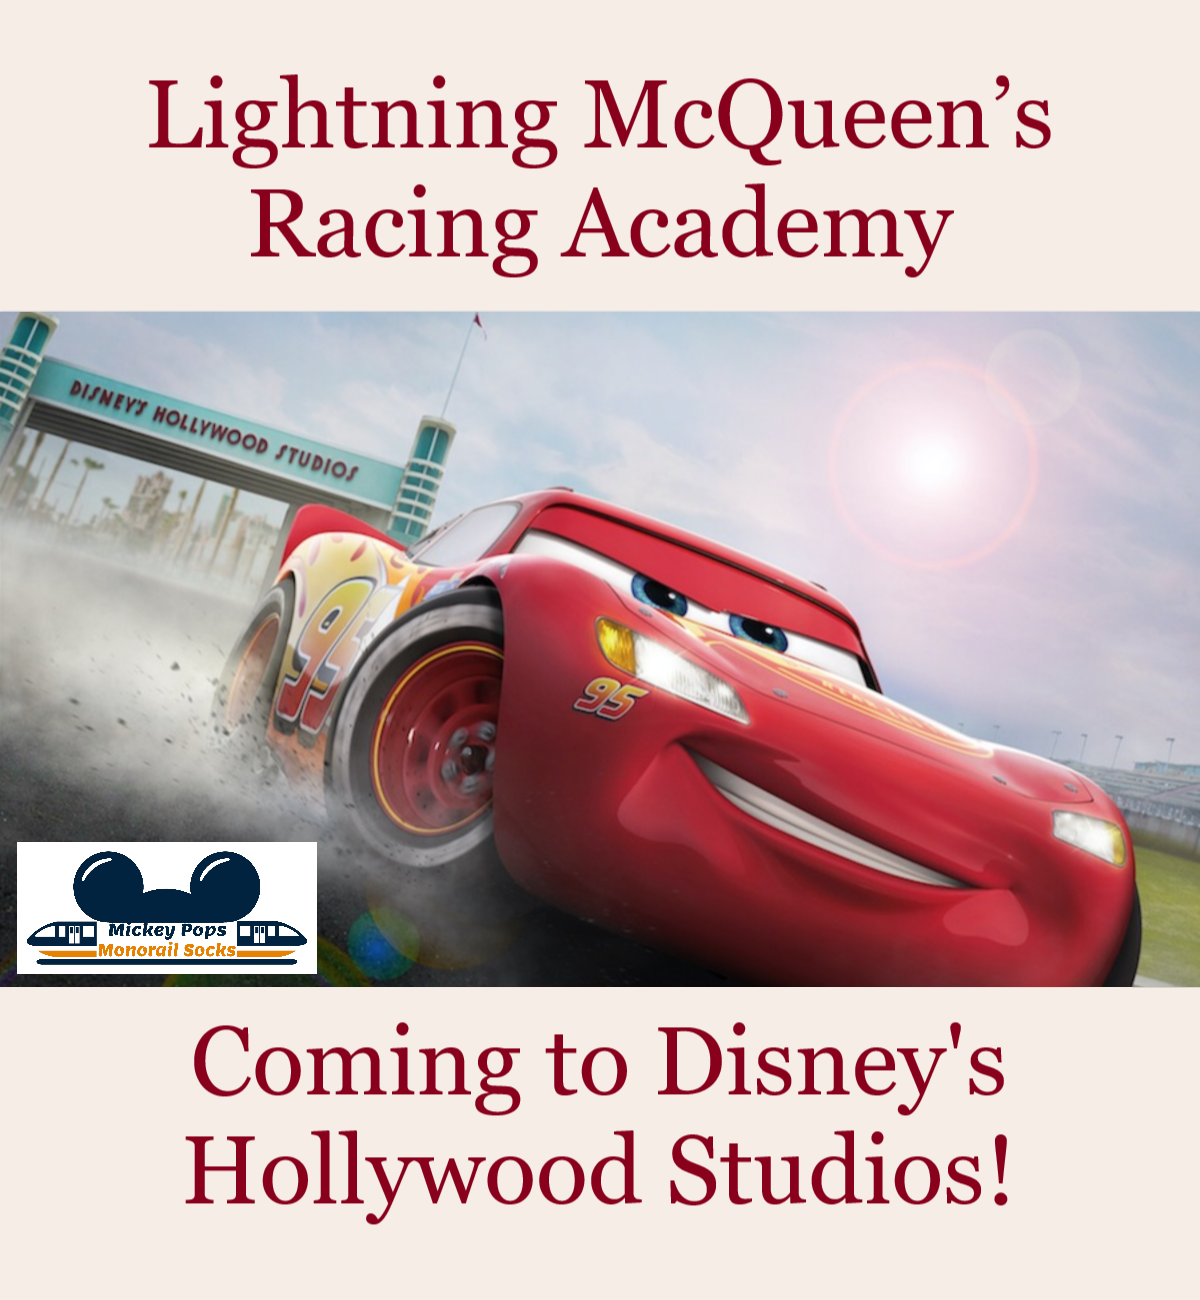 Lightning Mcqueen S Racing Academy Is Coming To Disney S Hollywood Studios Hollywood Studios Disney Hollywood Studios Disney Trip Planning